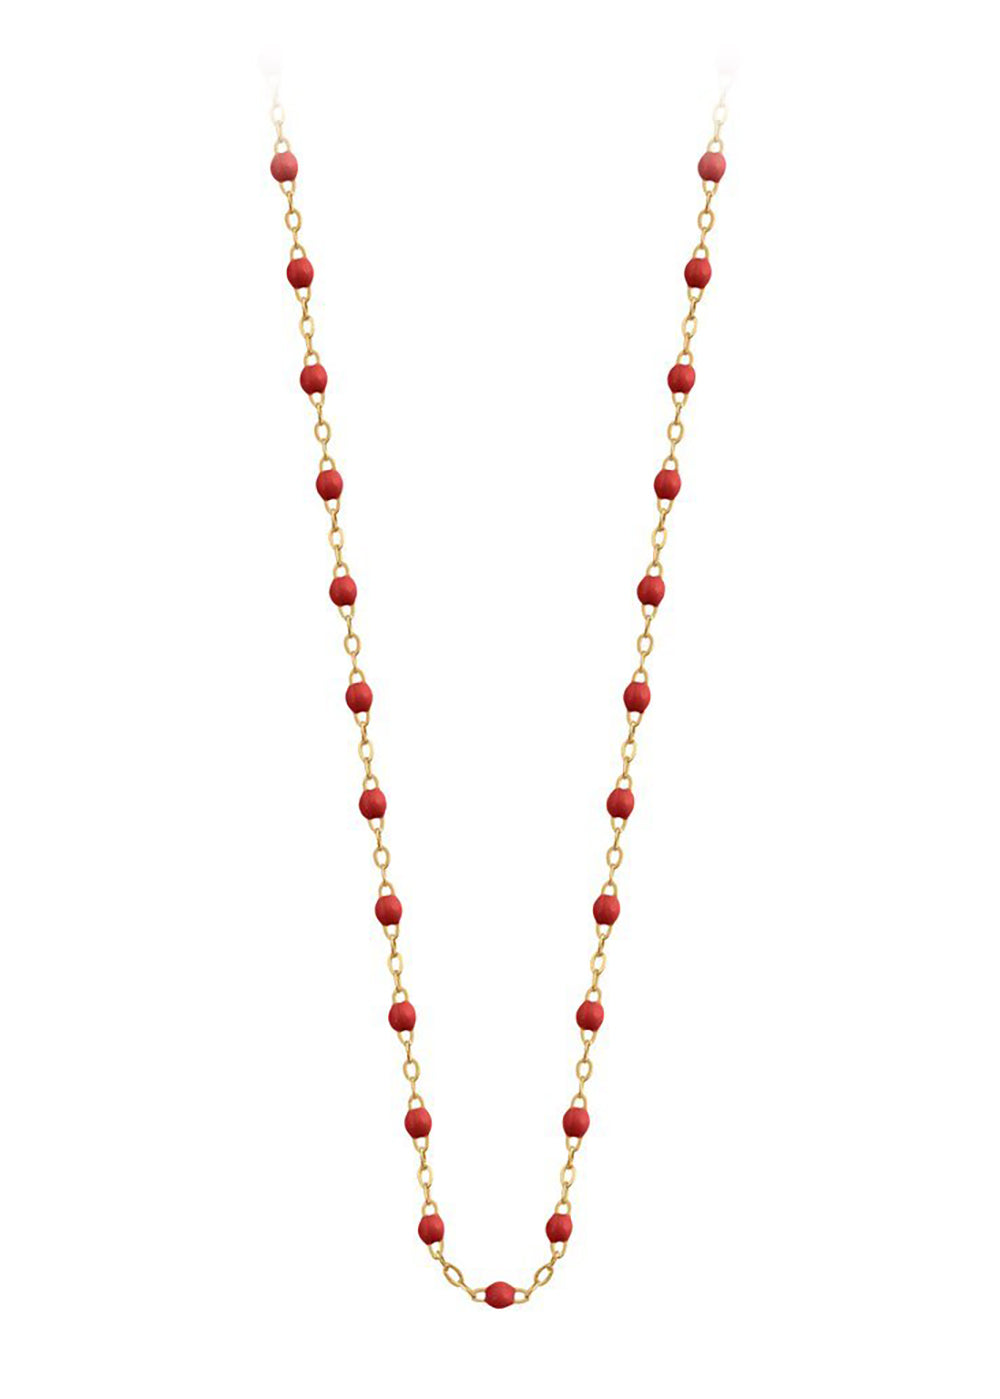 gigiCLOZEAU Jewlery - classic gigi necklace poppy |18k gold